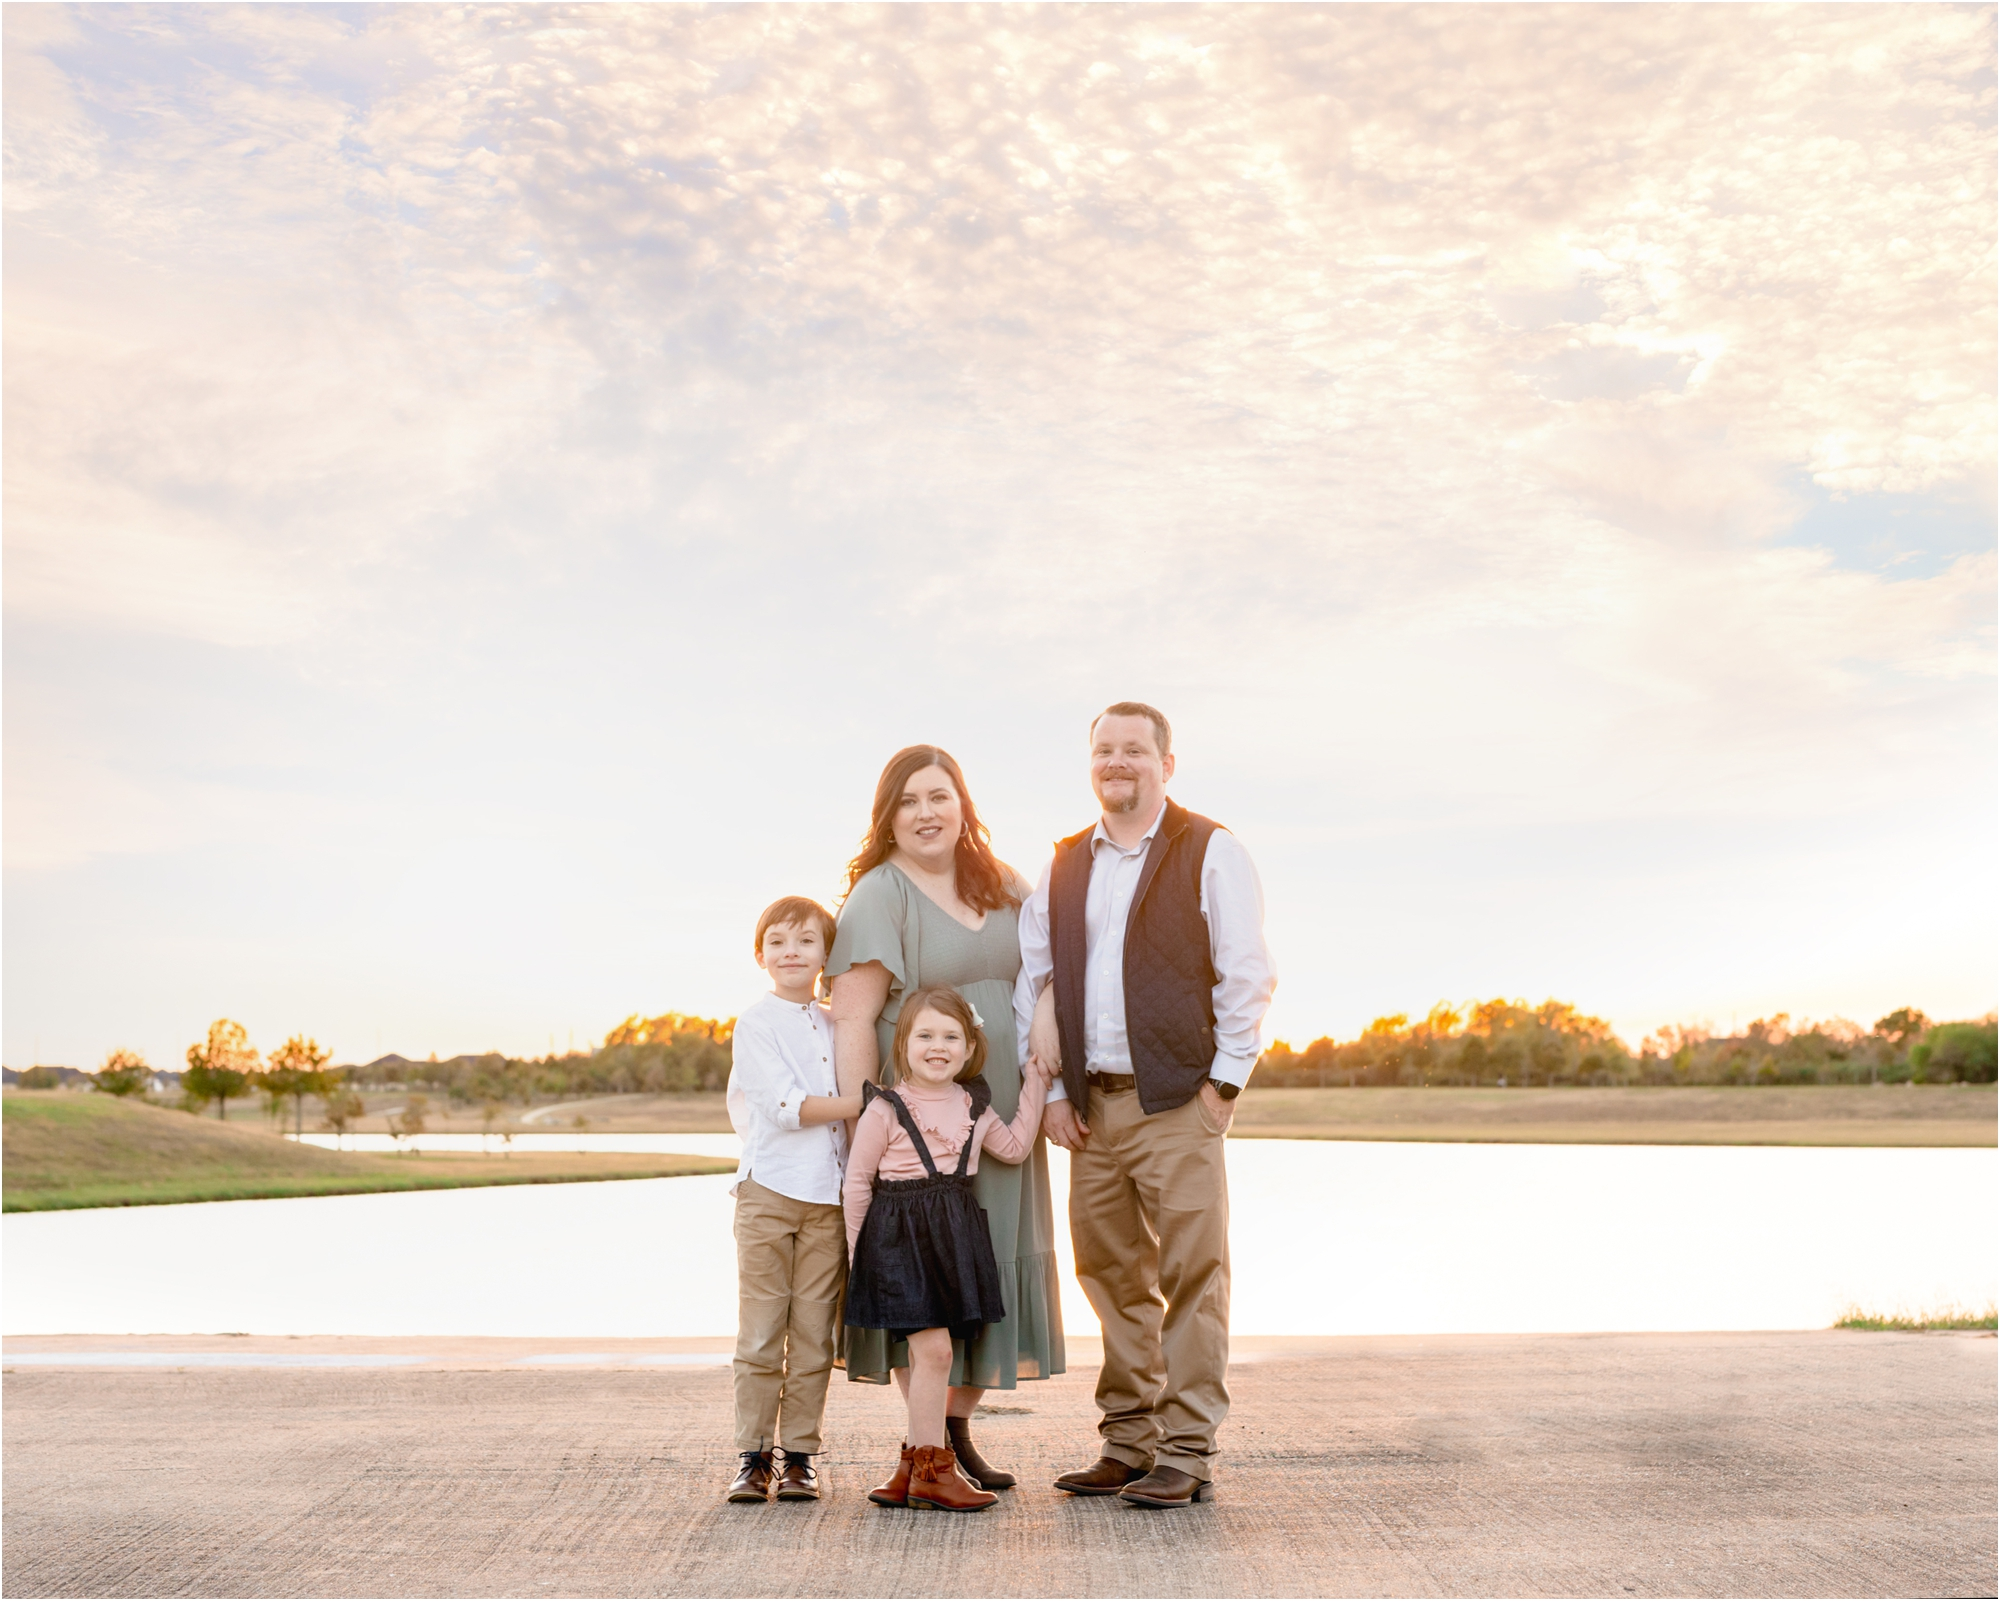 Beautiful family portrait under Texas skies during sunset session with Katy TX family photographer, Lifetime of Clicks Photography.